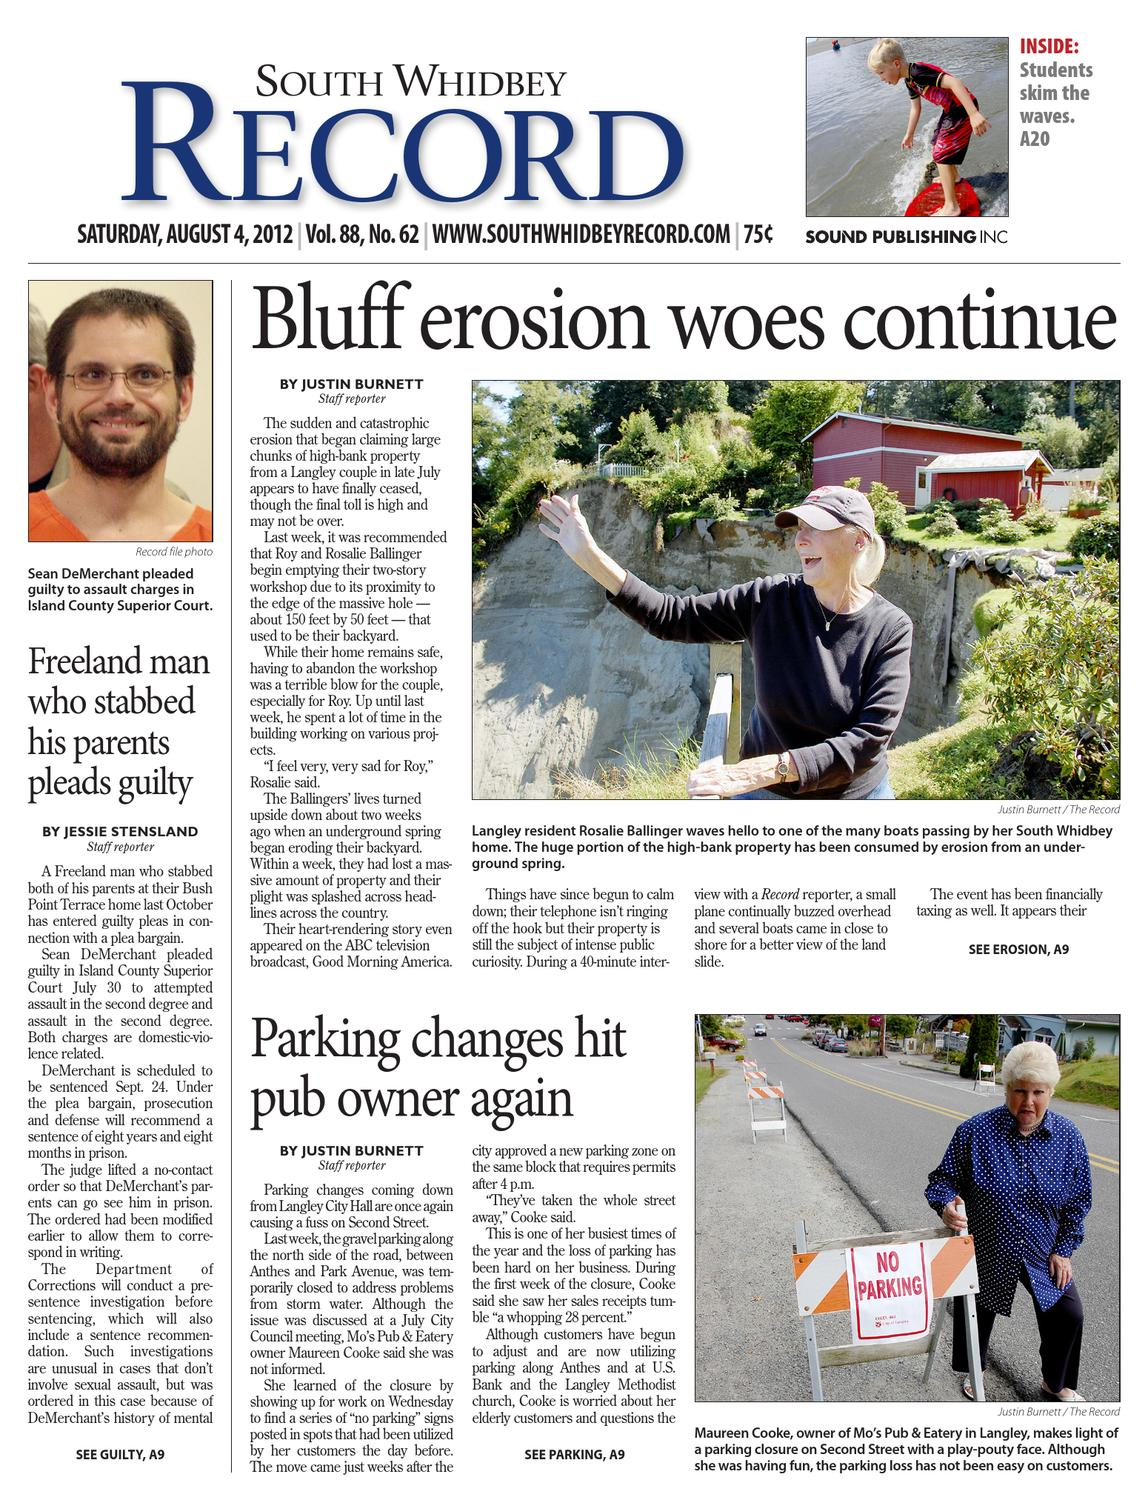 South Whidbey Record, August 04, 2012 by Sound Publishing